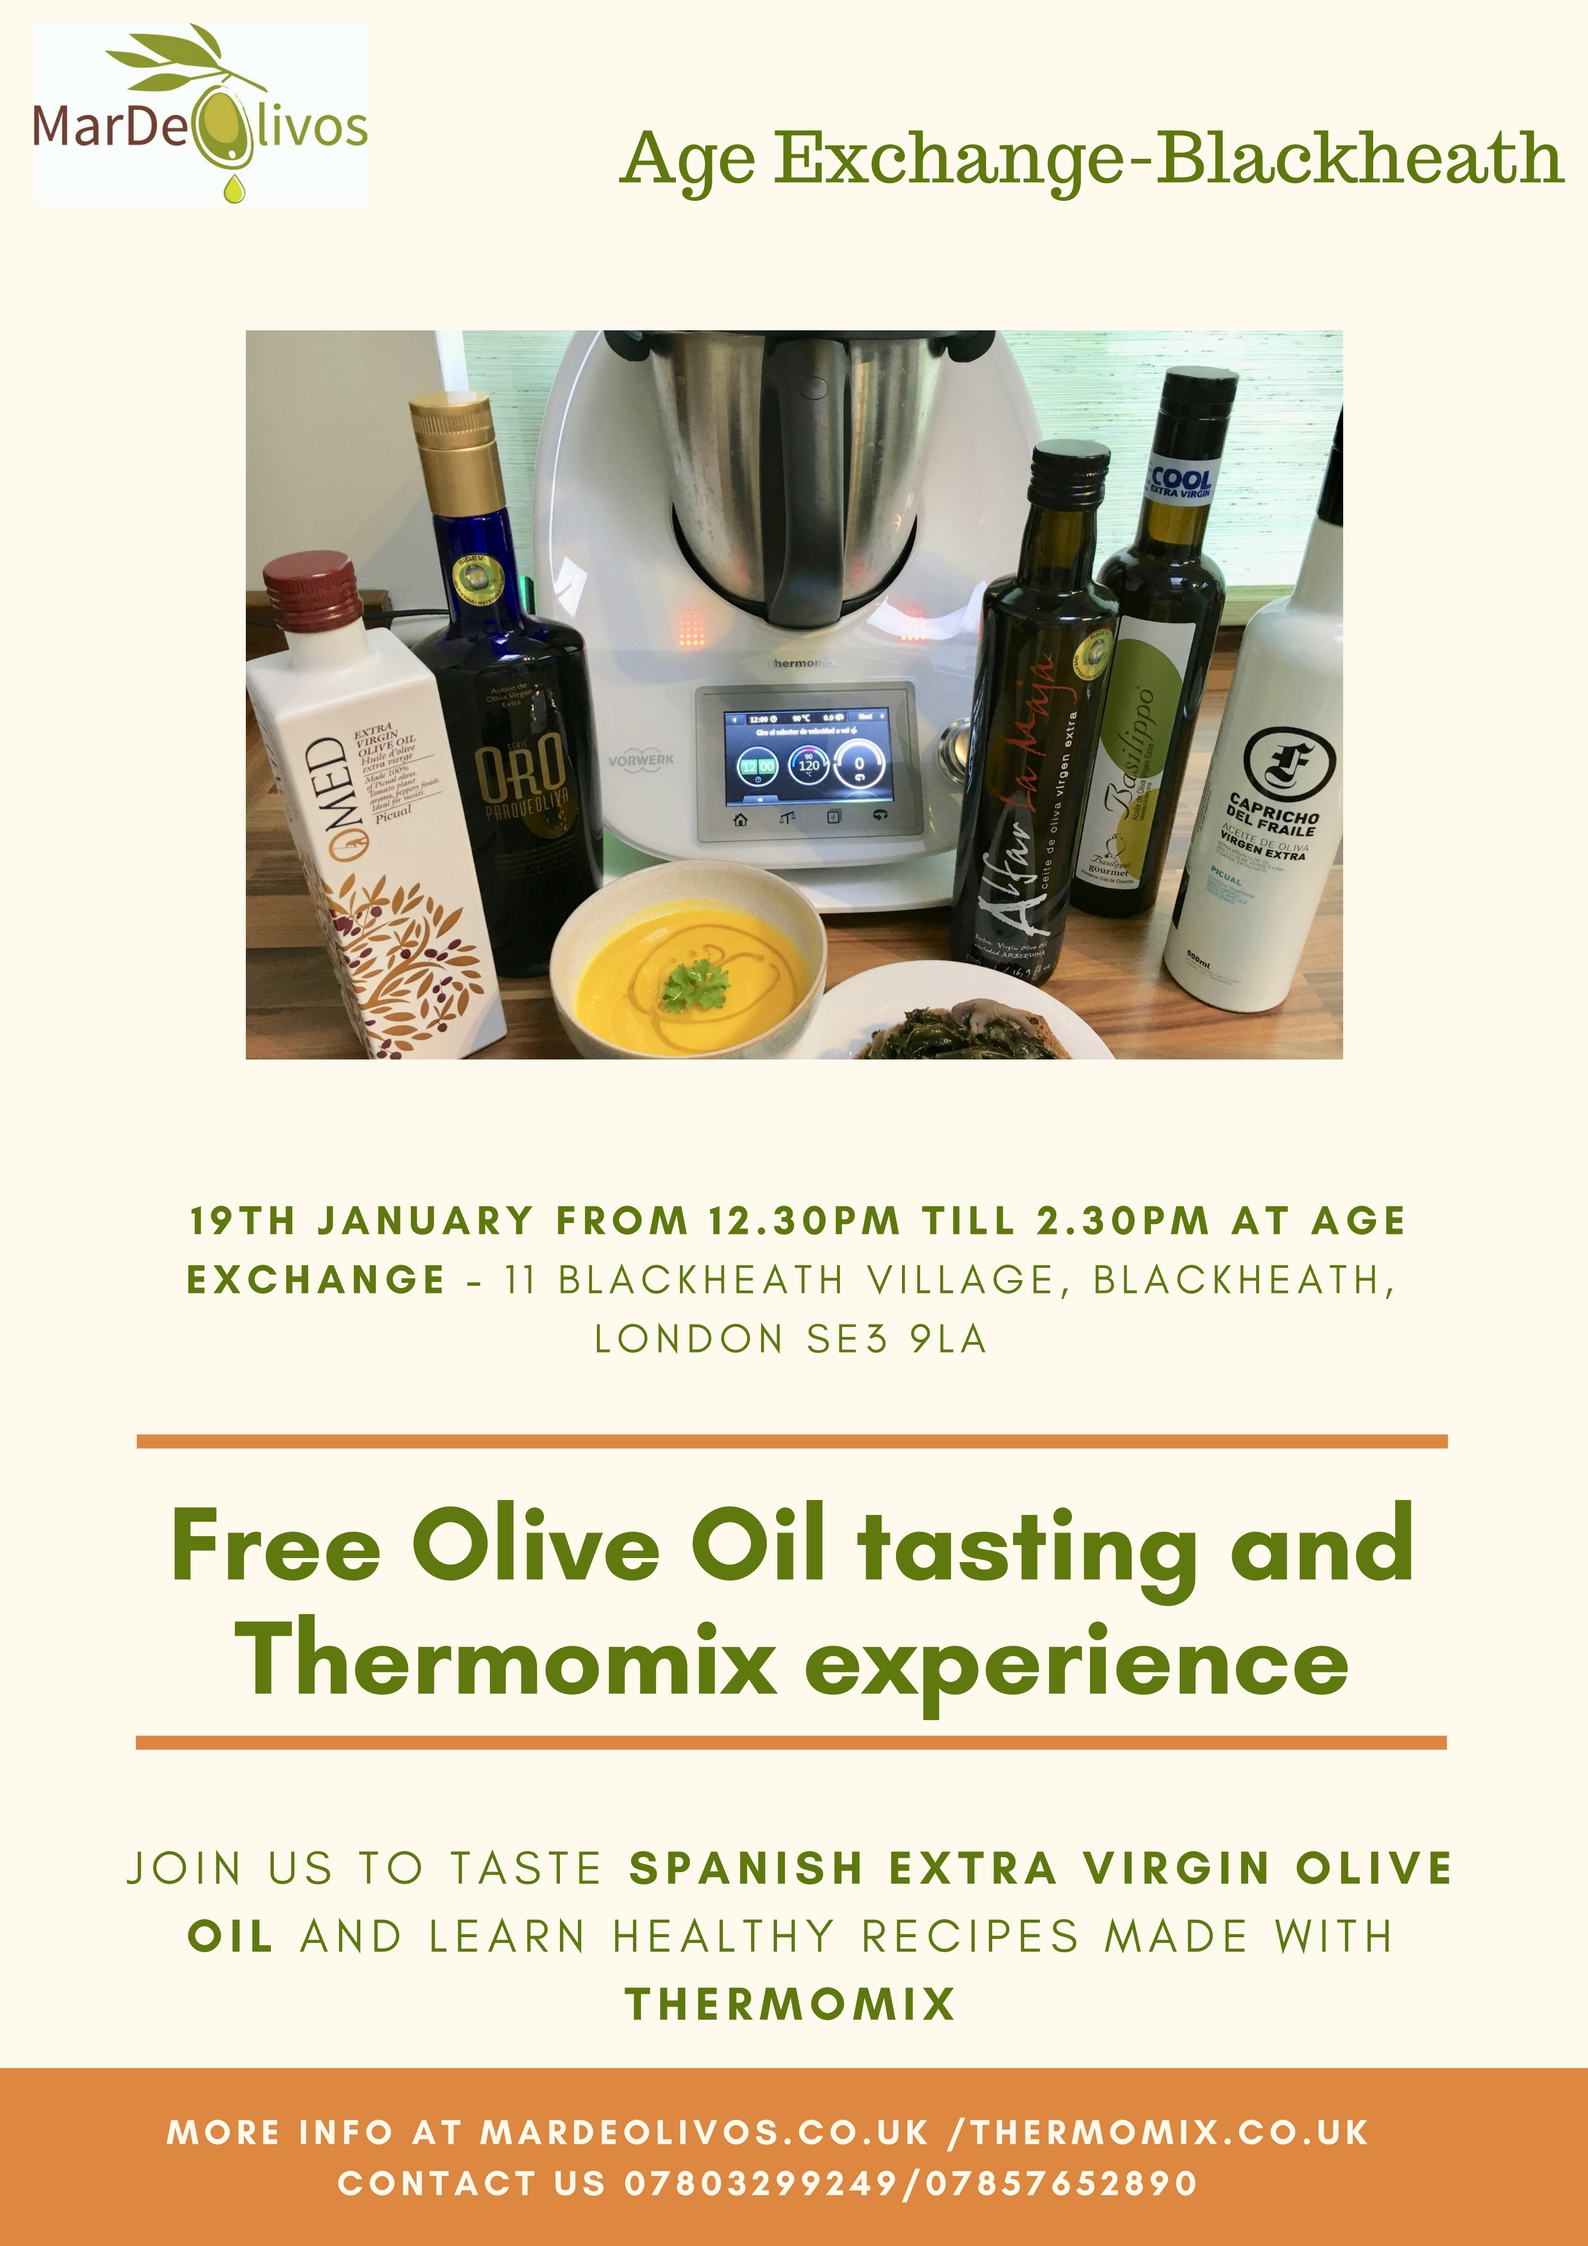 Free Olive Oil Tasting event in Blackheath